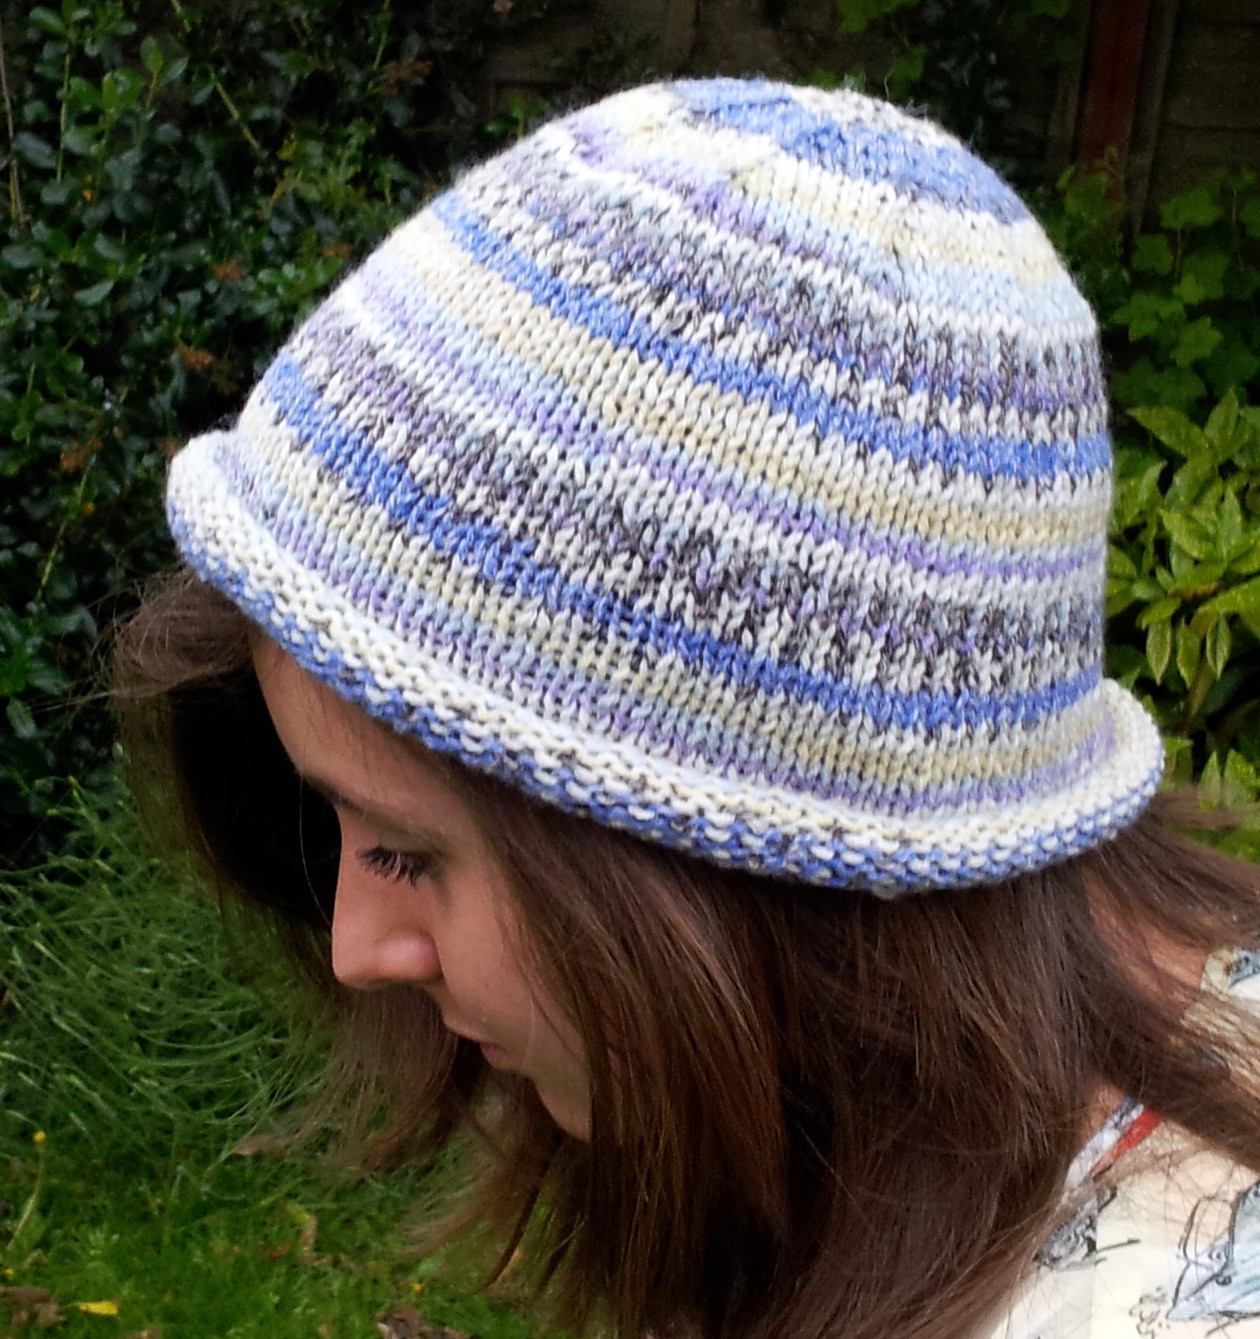 Knit Hat Patterns Awesome Knitted Rolled Brim Beanie Hat – Free Beginners Pattern Of Gorgeous 49 Pictures Knit Hat Patterns